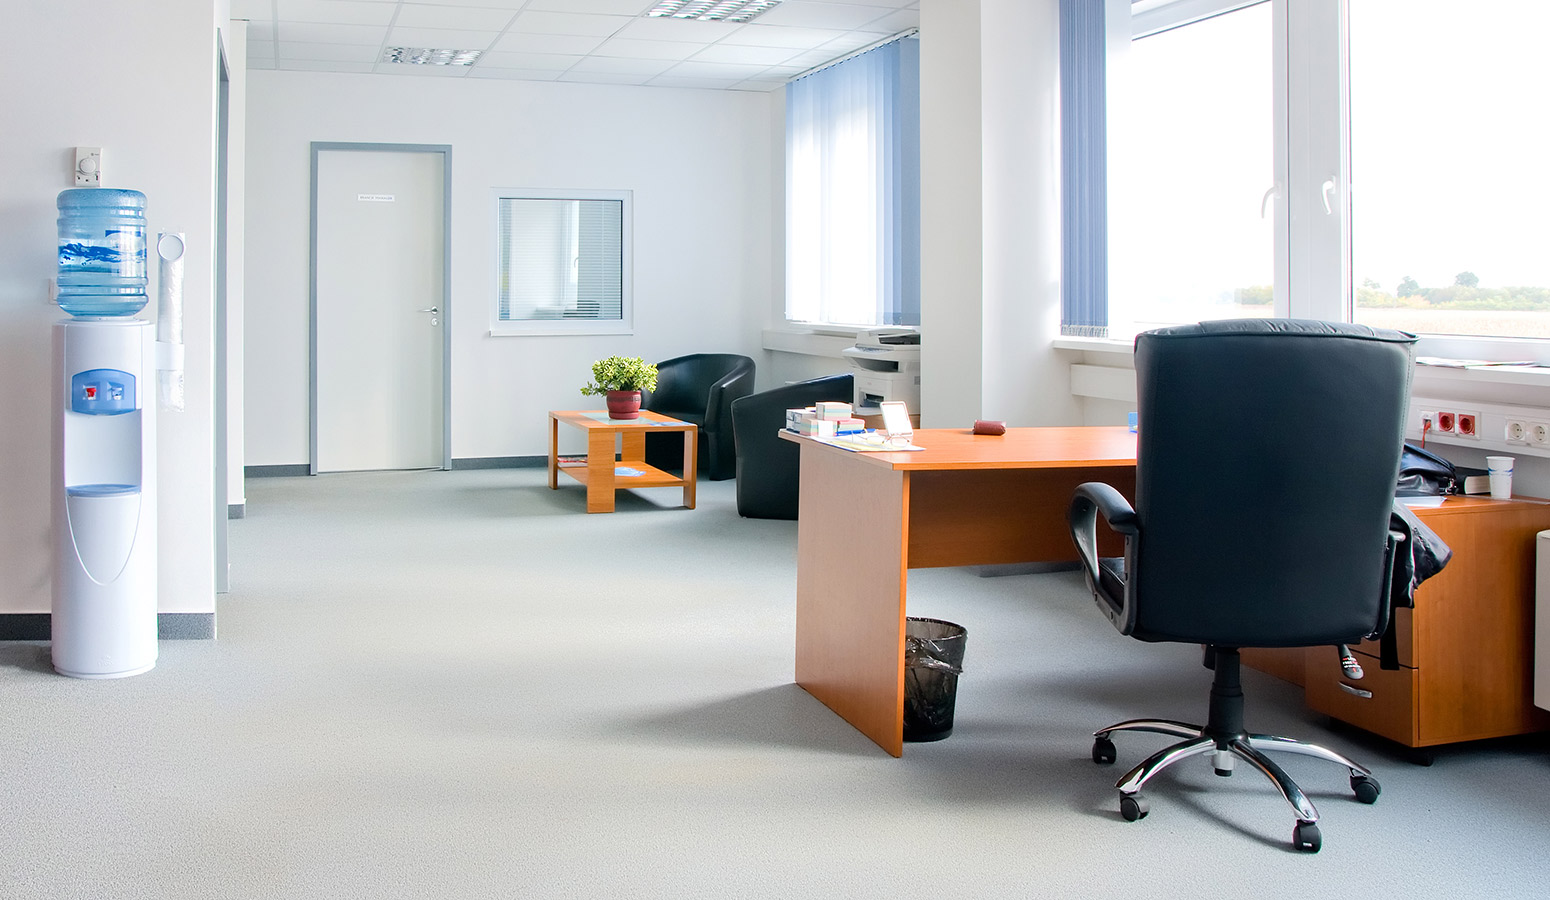 Office cleaning services professional office cleaners - Room e ...